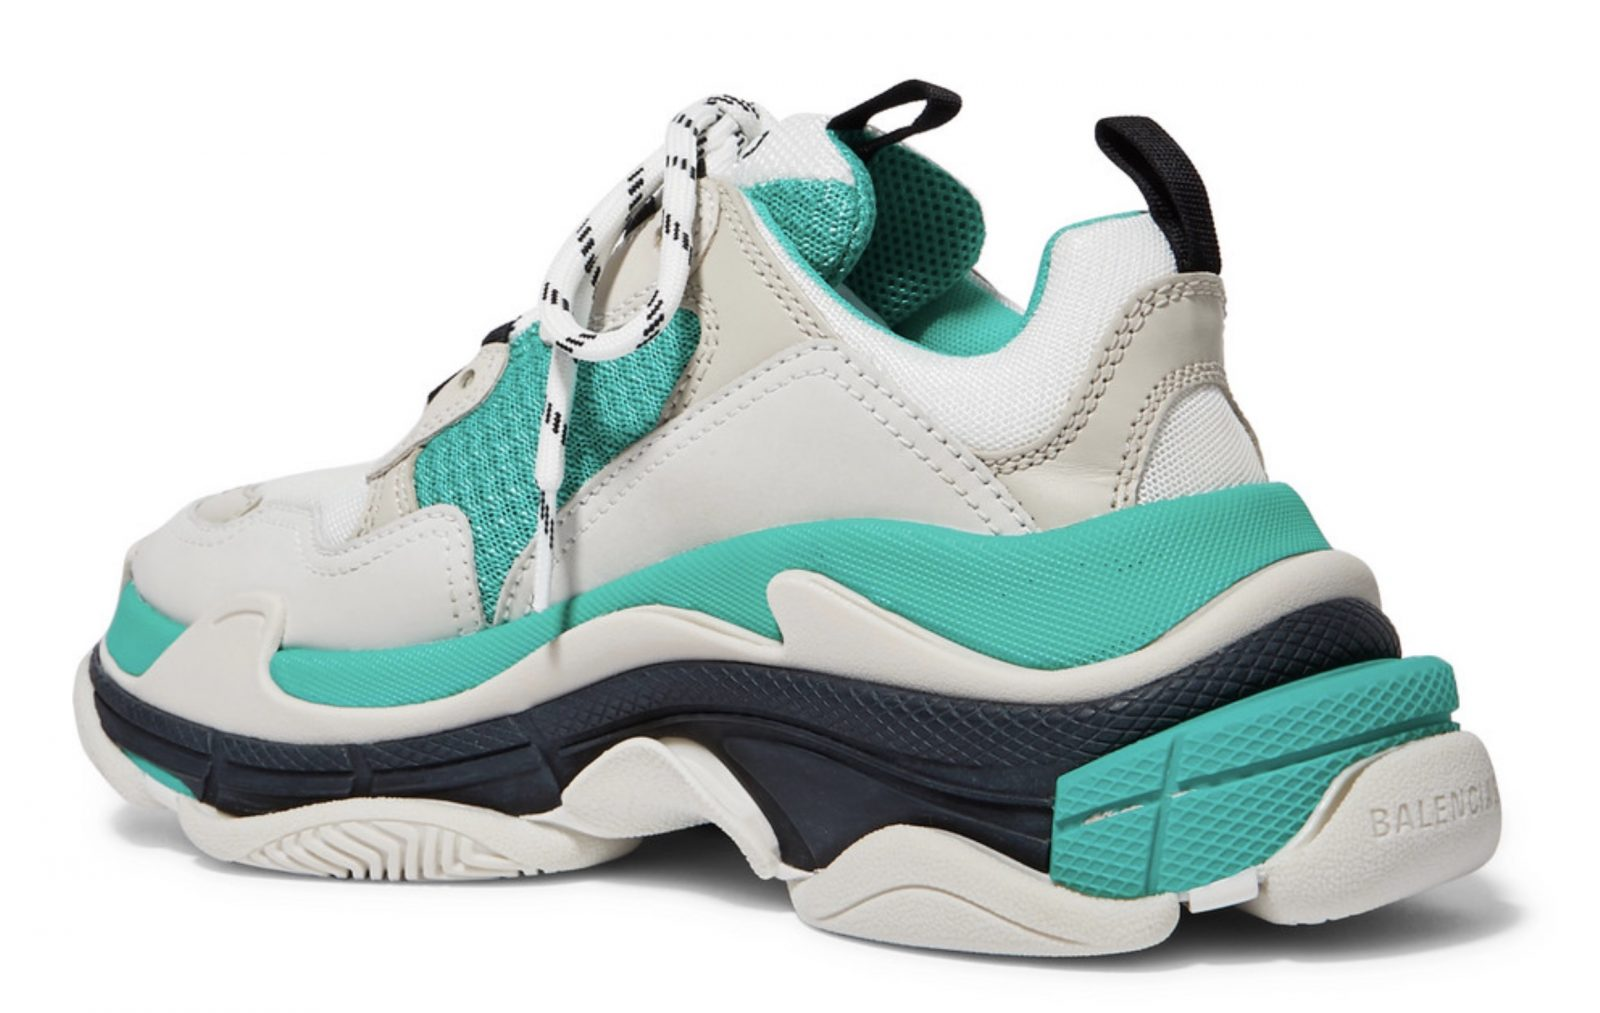 Cop The Stand-Out Balenciaga Triple S With 30% Off Now! heel